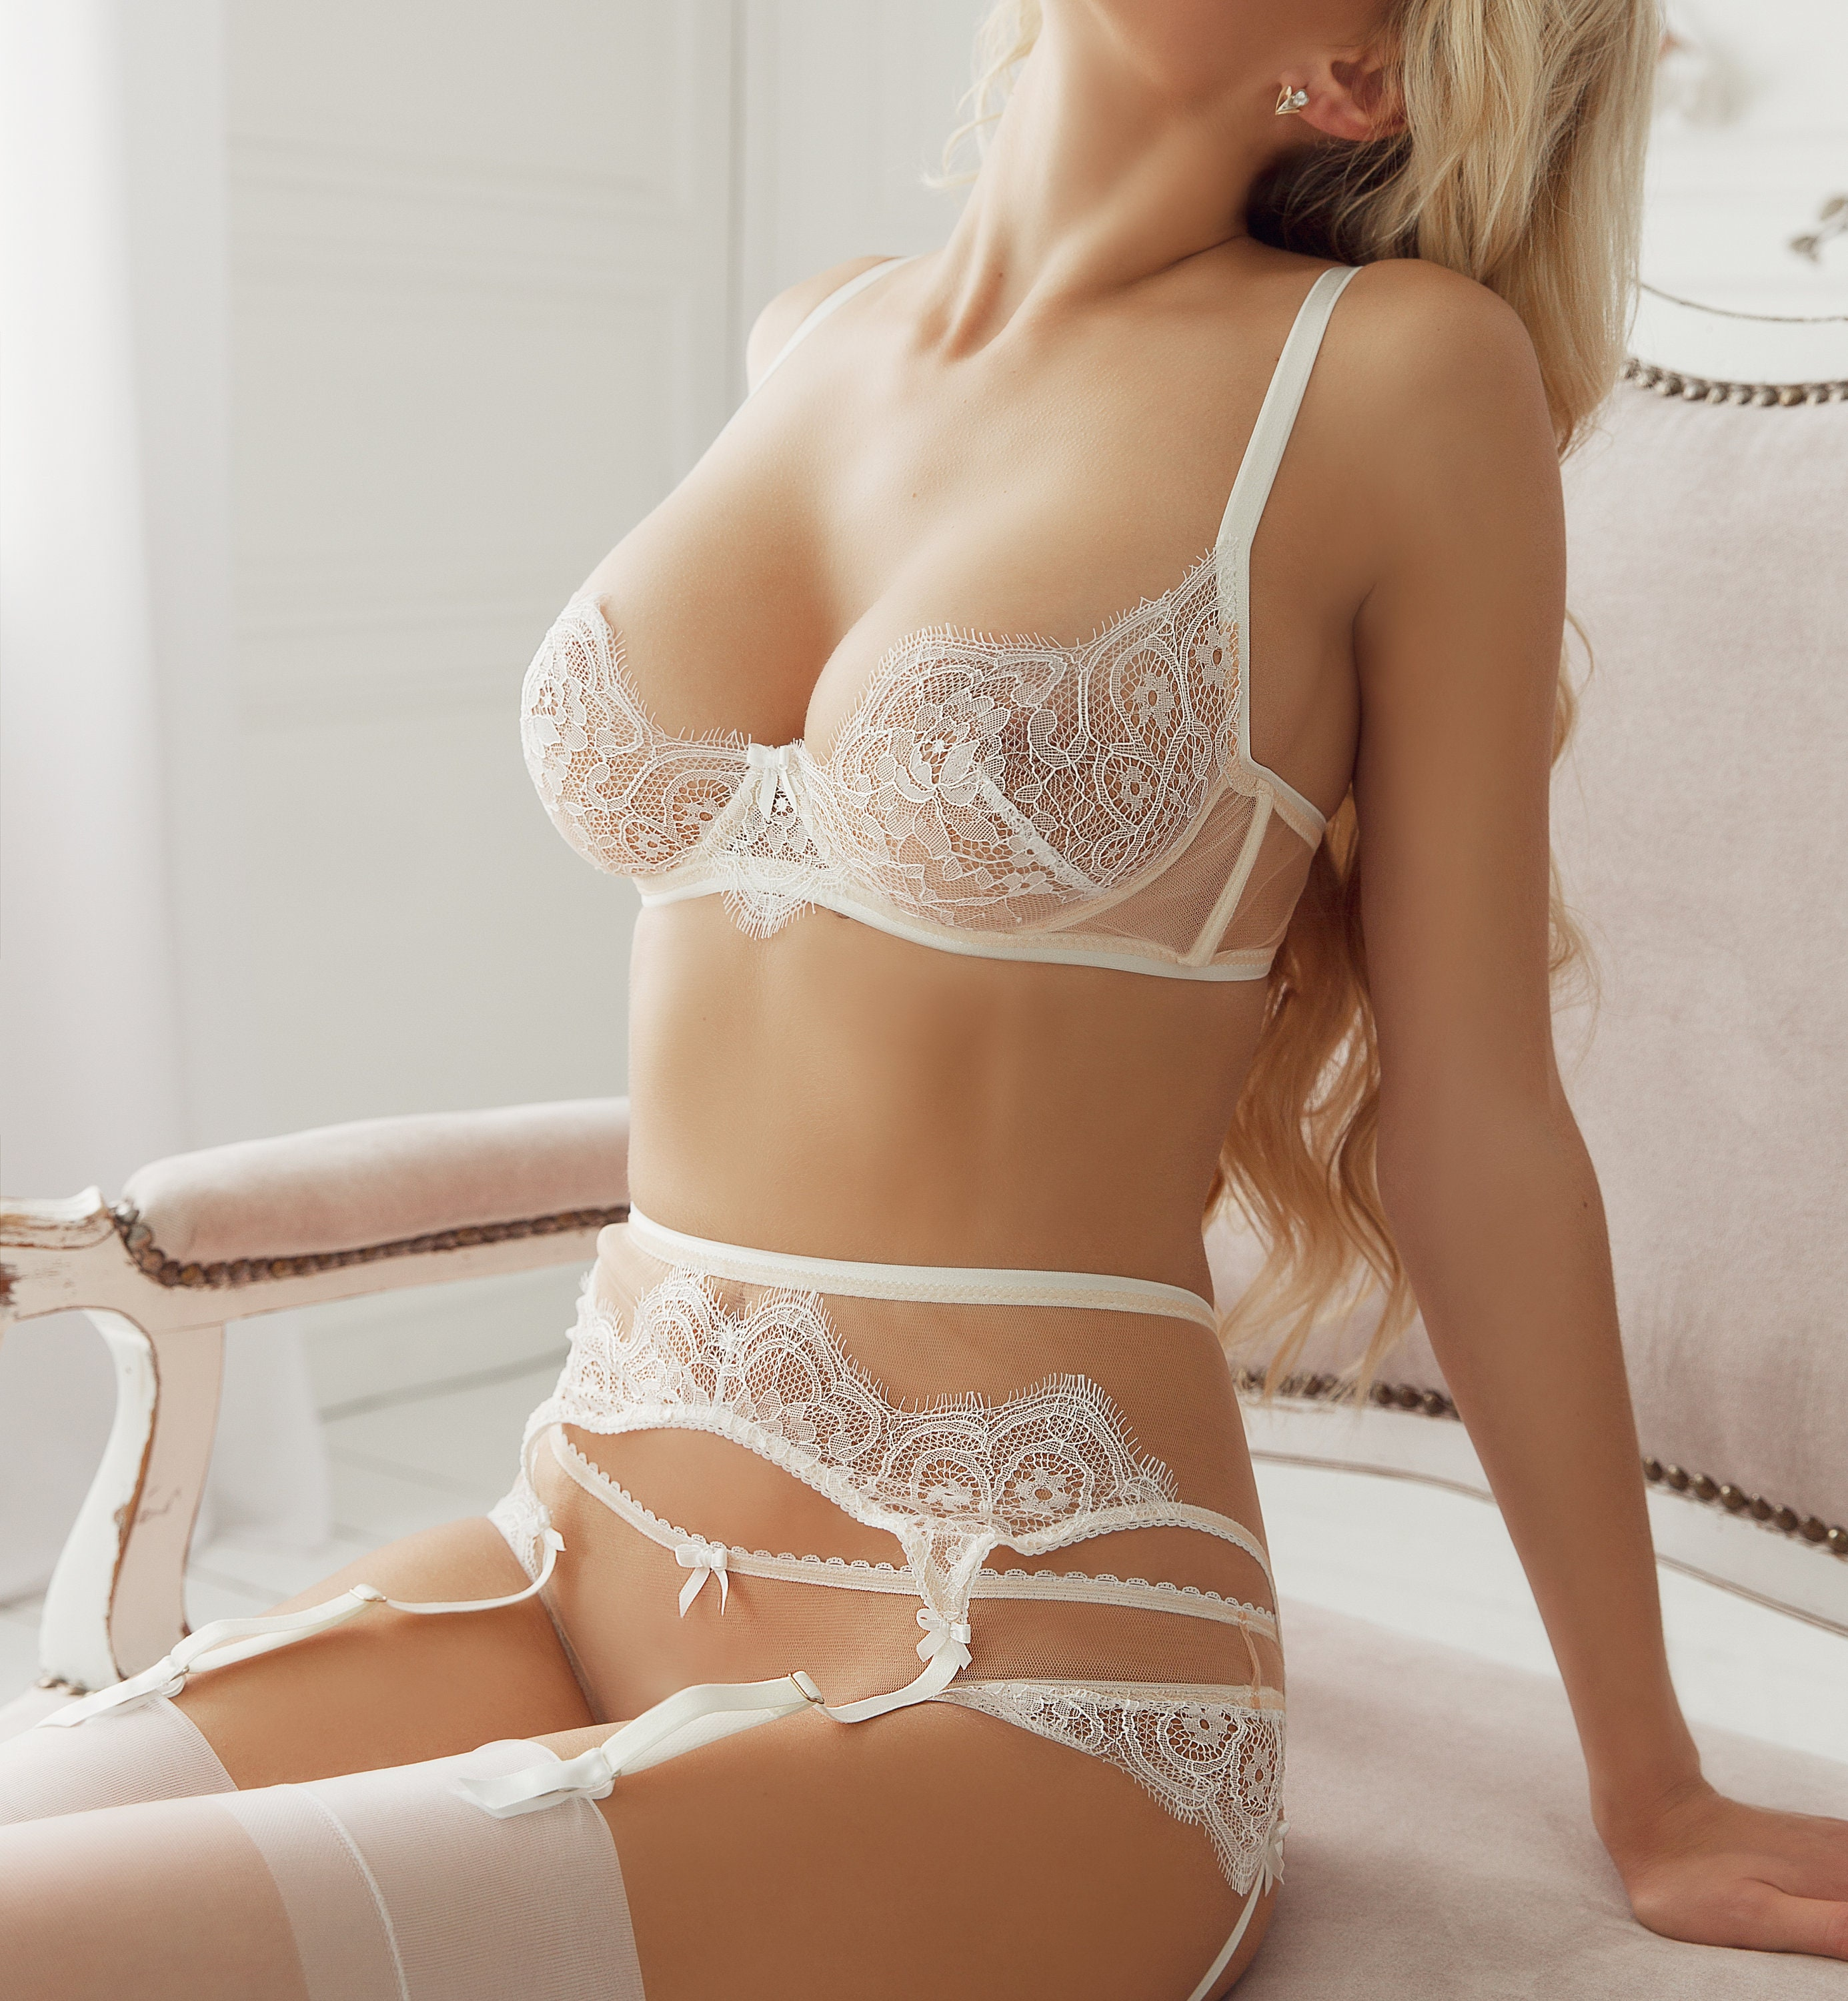 311daaa14 Wedding lingerie See through lingerie Bridal lingerie Plus